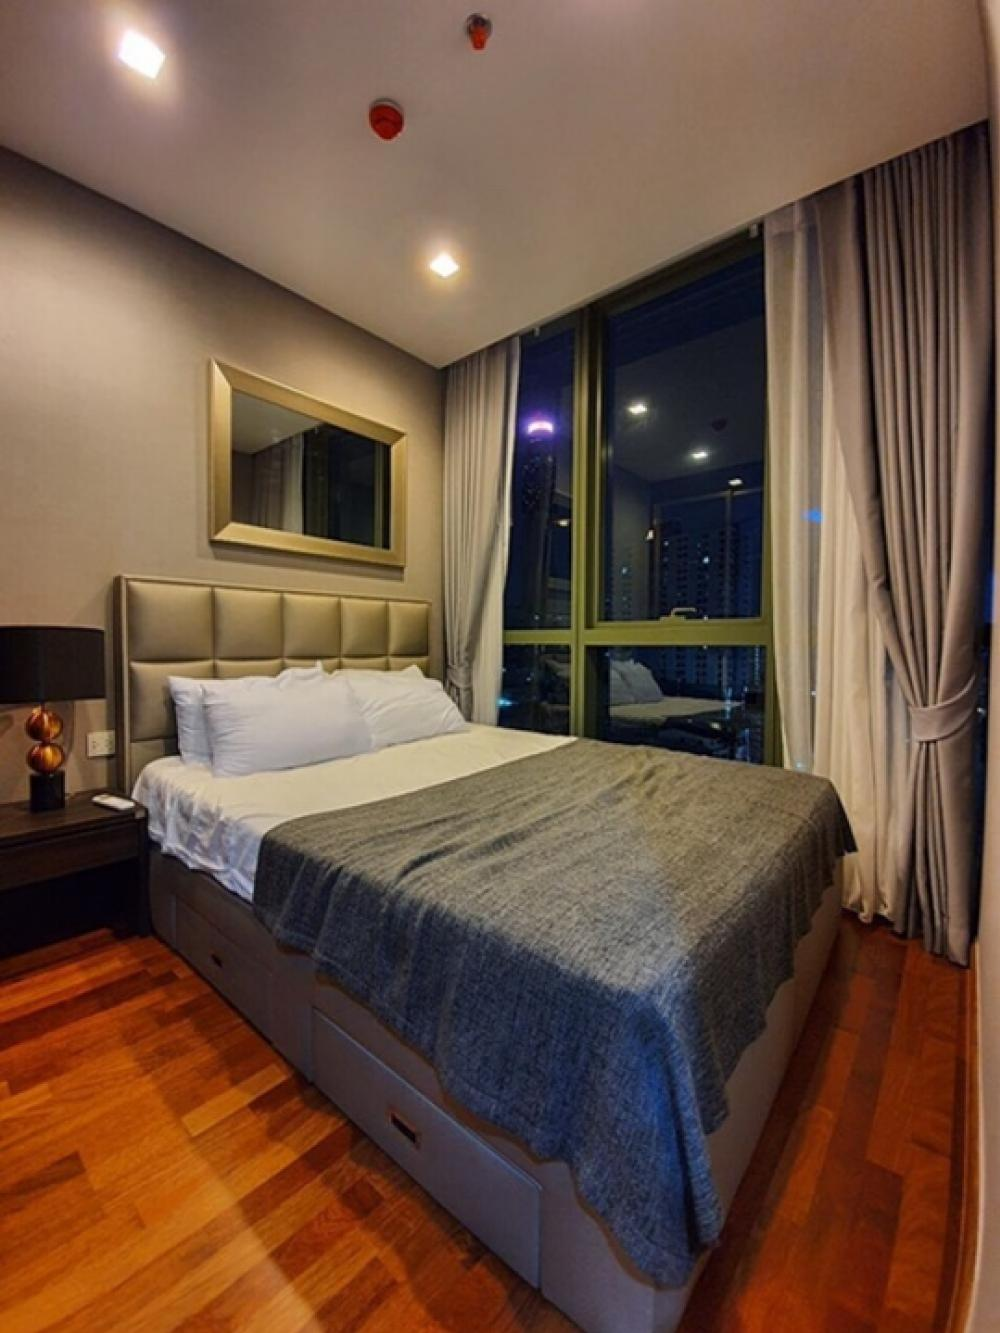 For SaleCondoRatchathewi,Phayathai : Lowest price in this area. Wish Signature Midtown. Beautiful room, beautiful view !!